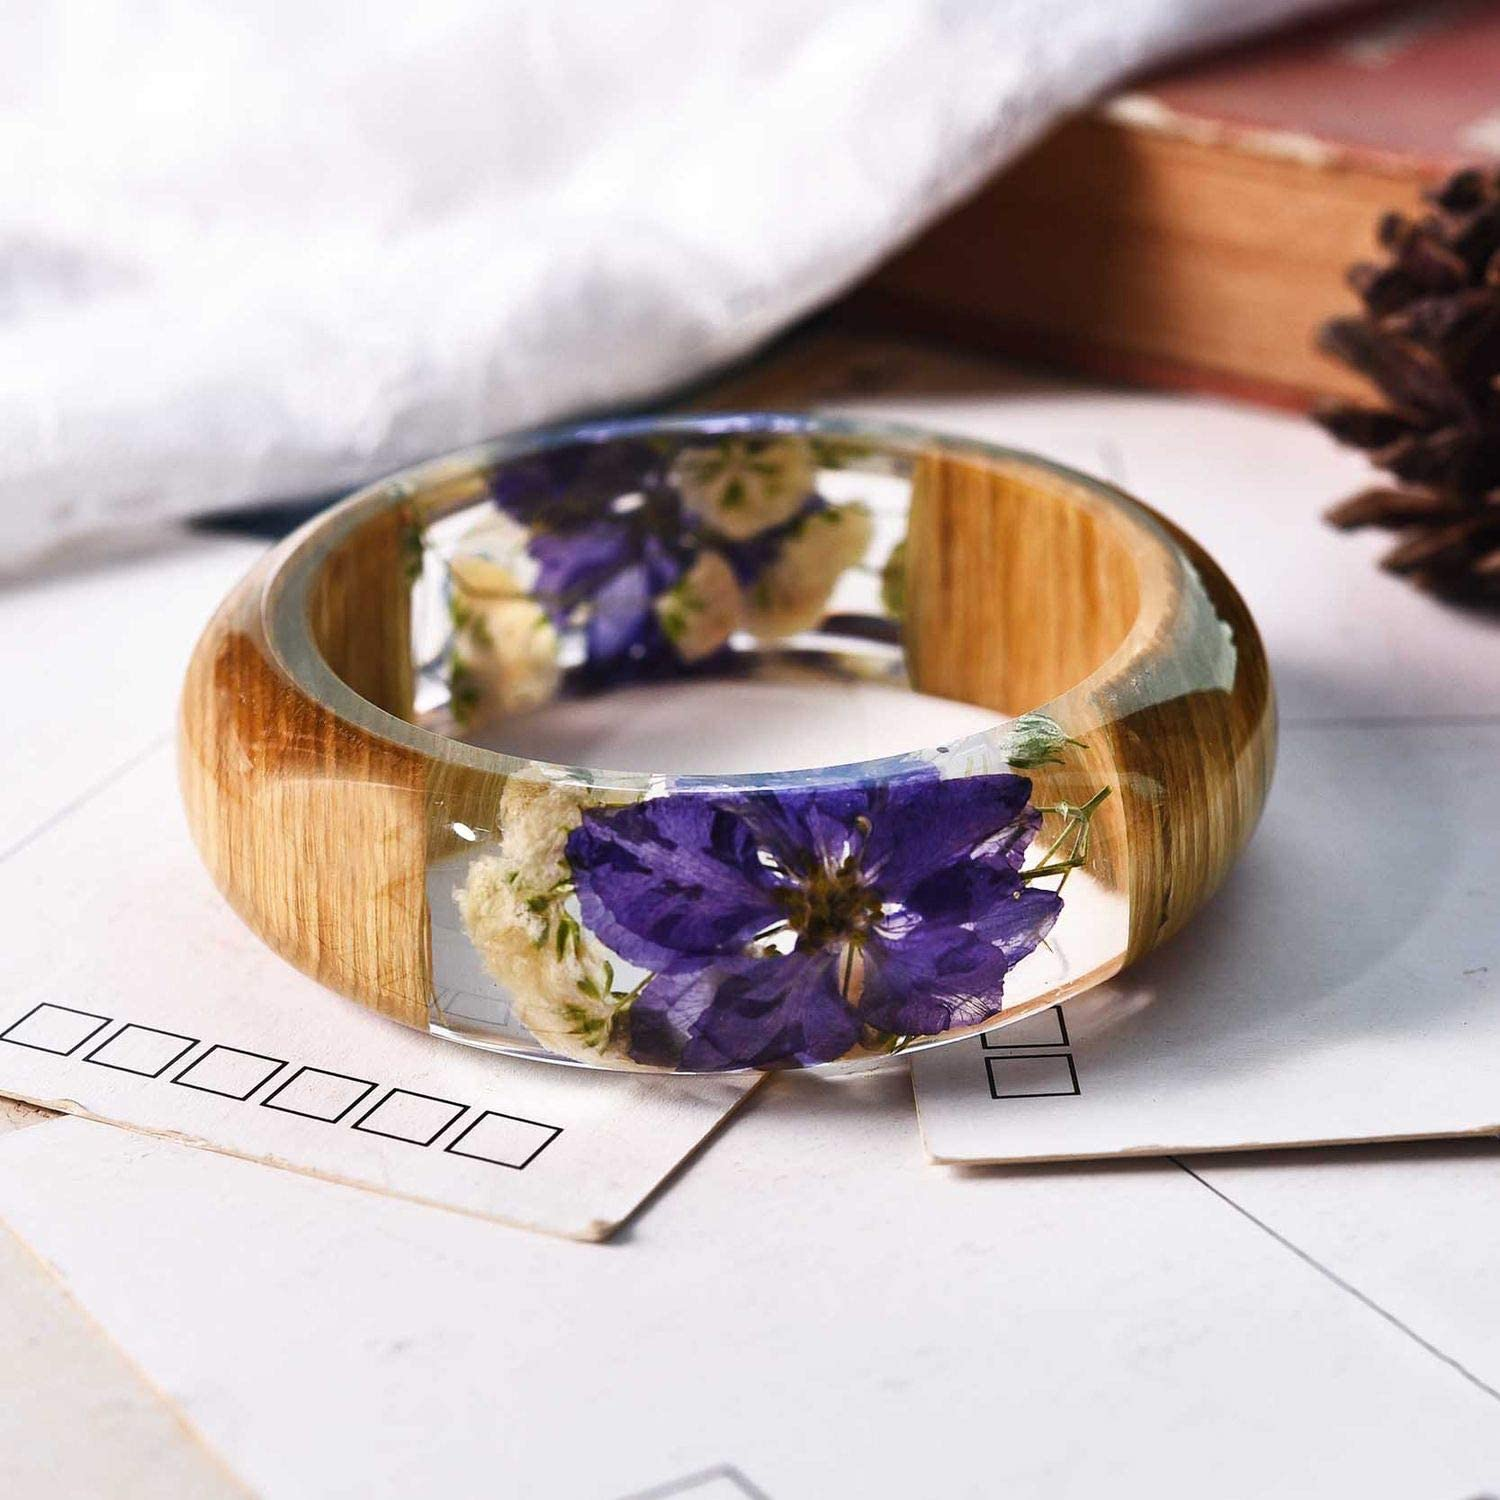 xiaoxiaoland Resin Bangle Bracelet with Real Wood Purple Dried Flower Bohemia Style Bangle D